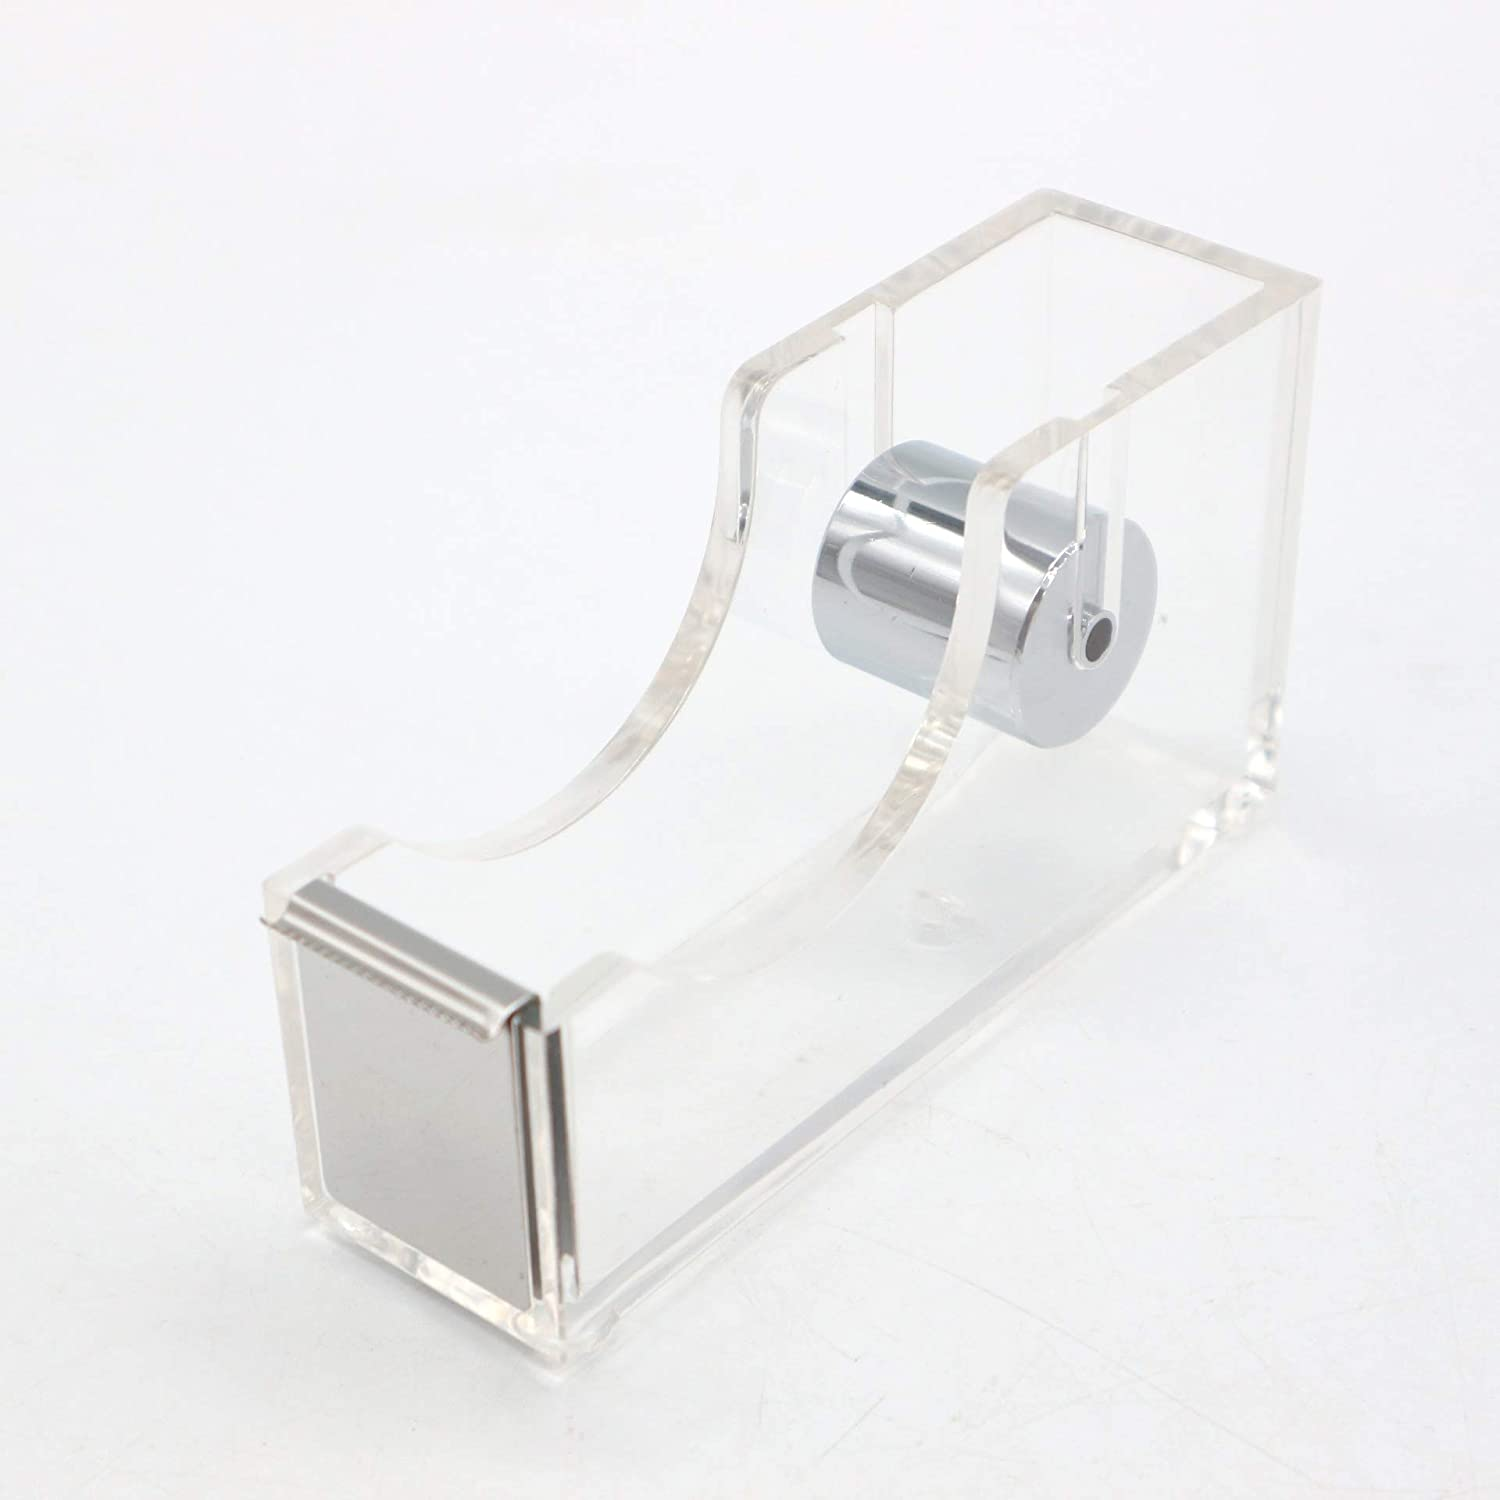 LUYING Desktop Clear Tape Dispenser Acrylic Nonslip Tape Cutter Heavy Duty [Elegant and Modern Design] Office Stationery (Silver)